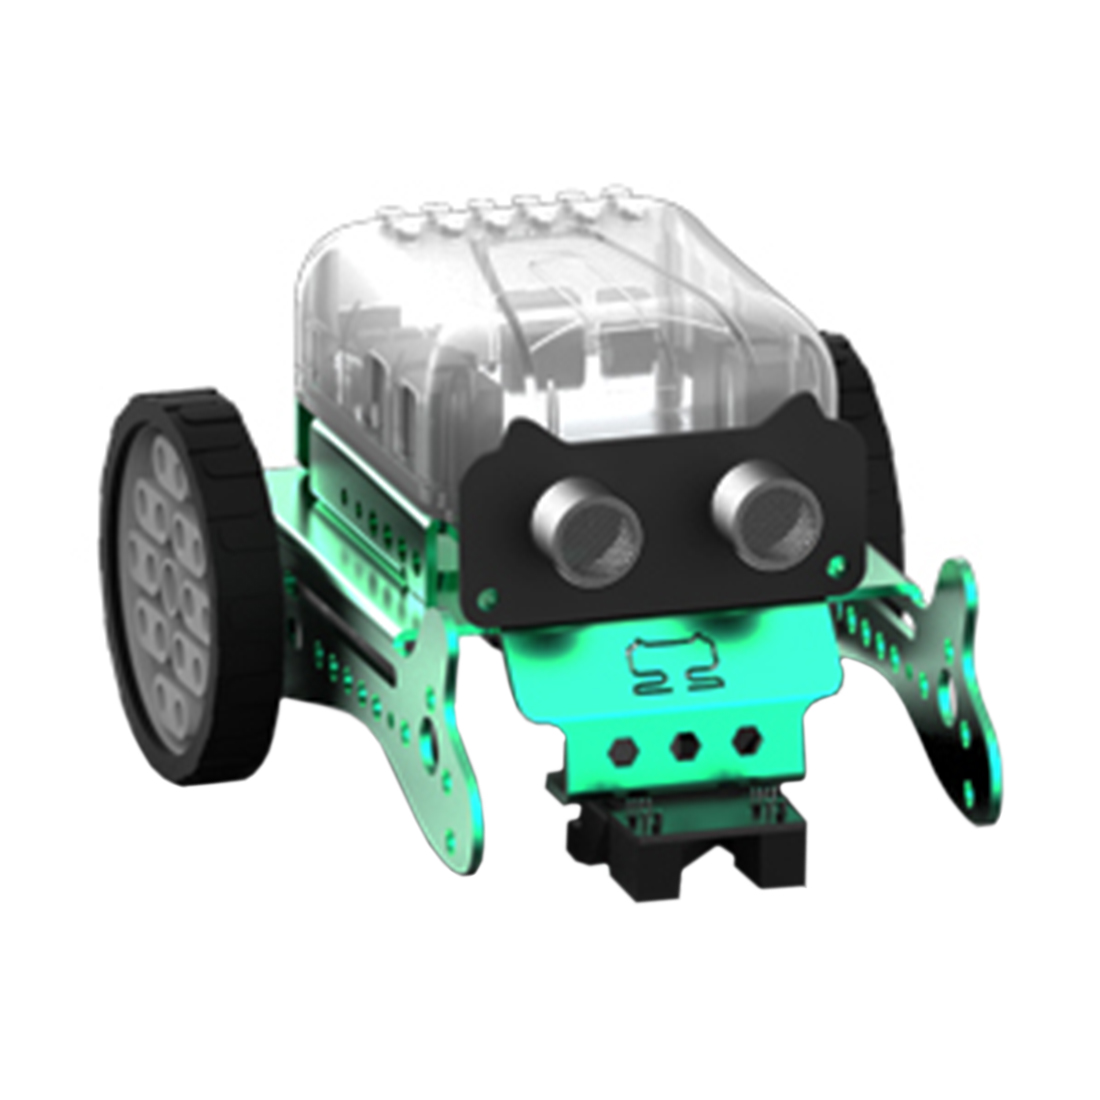 DIY Neo Programming Scratch Intelligent Obstacle Avoidance Car Robot Kit Brain-Training Toy For Children Education Toy-Green Red